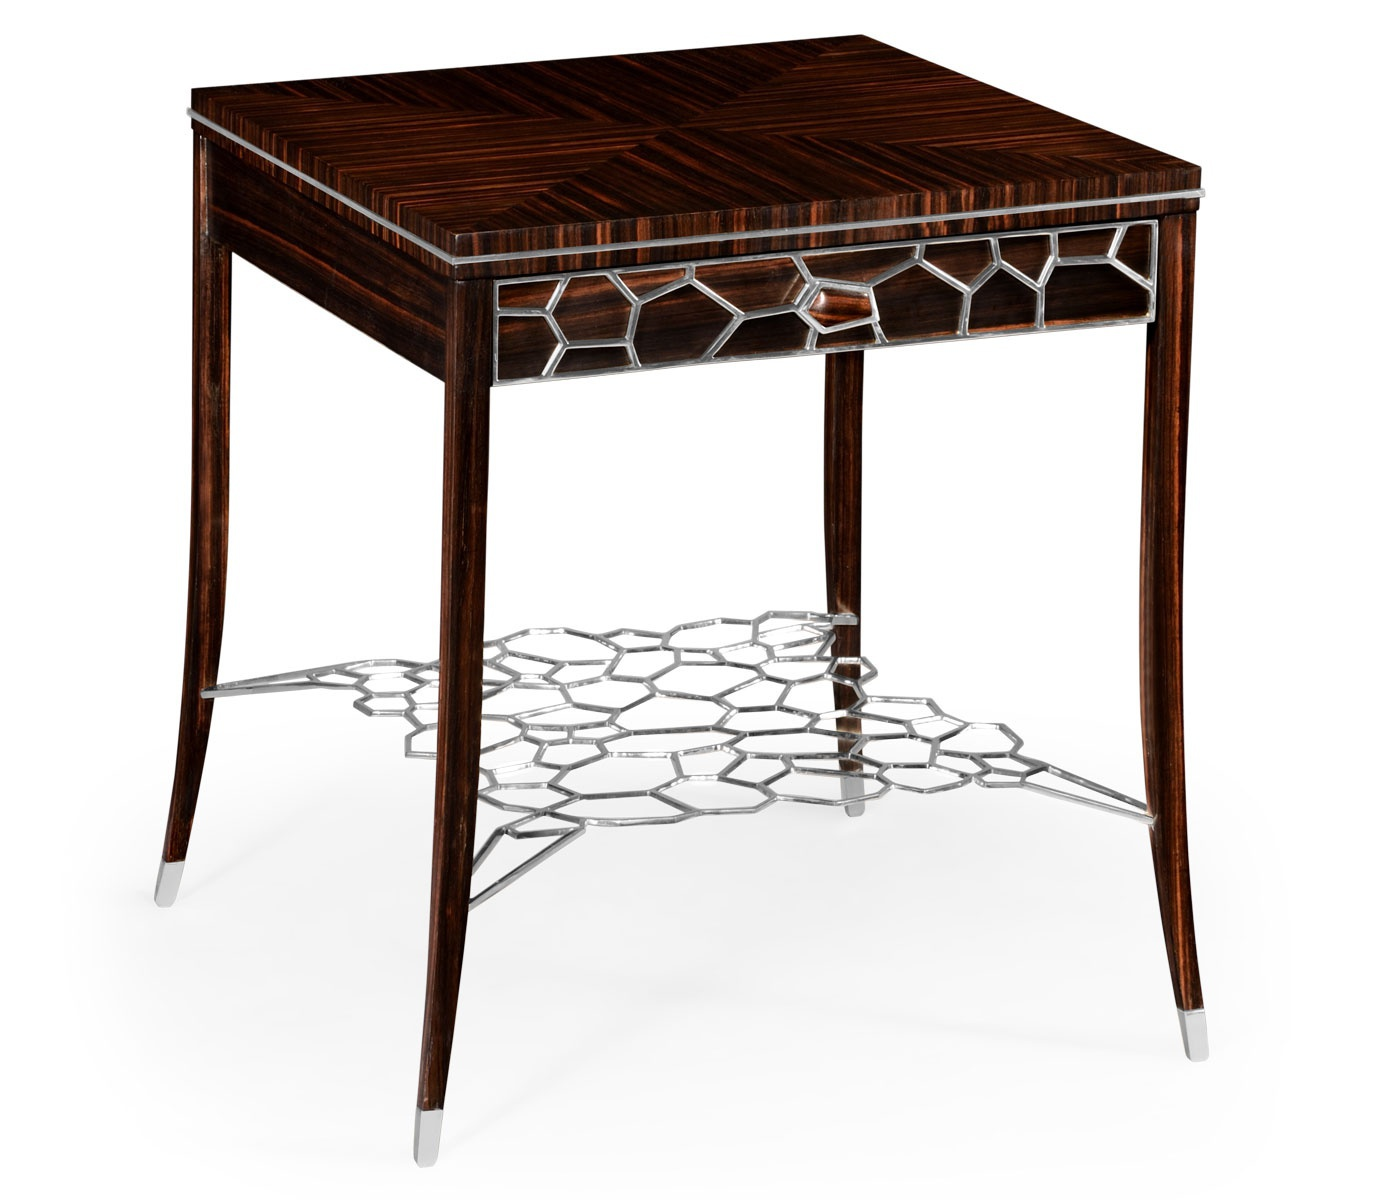 Table With Drawer And Shelf, Made Of Brass Soho, Jonathan